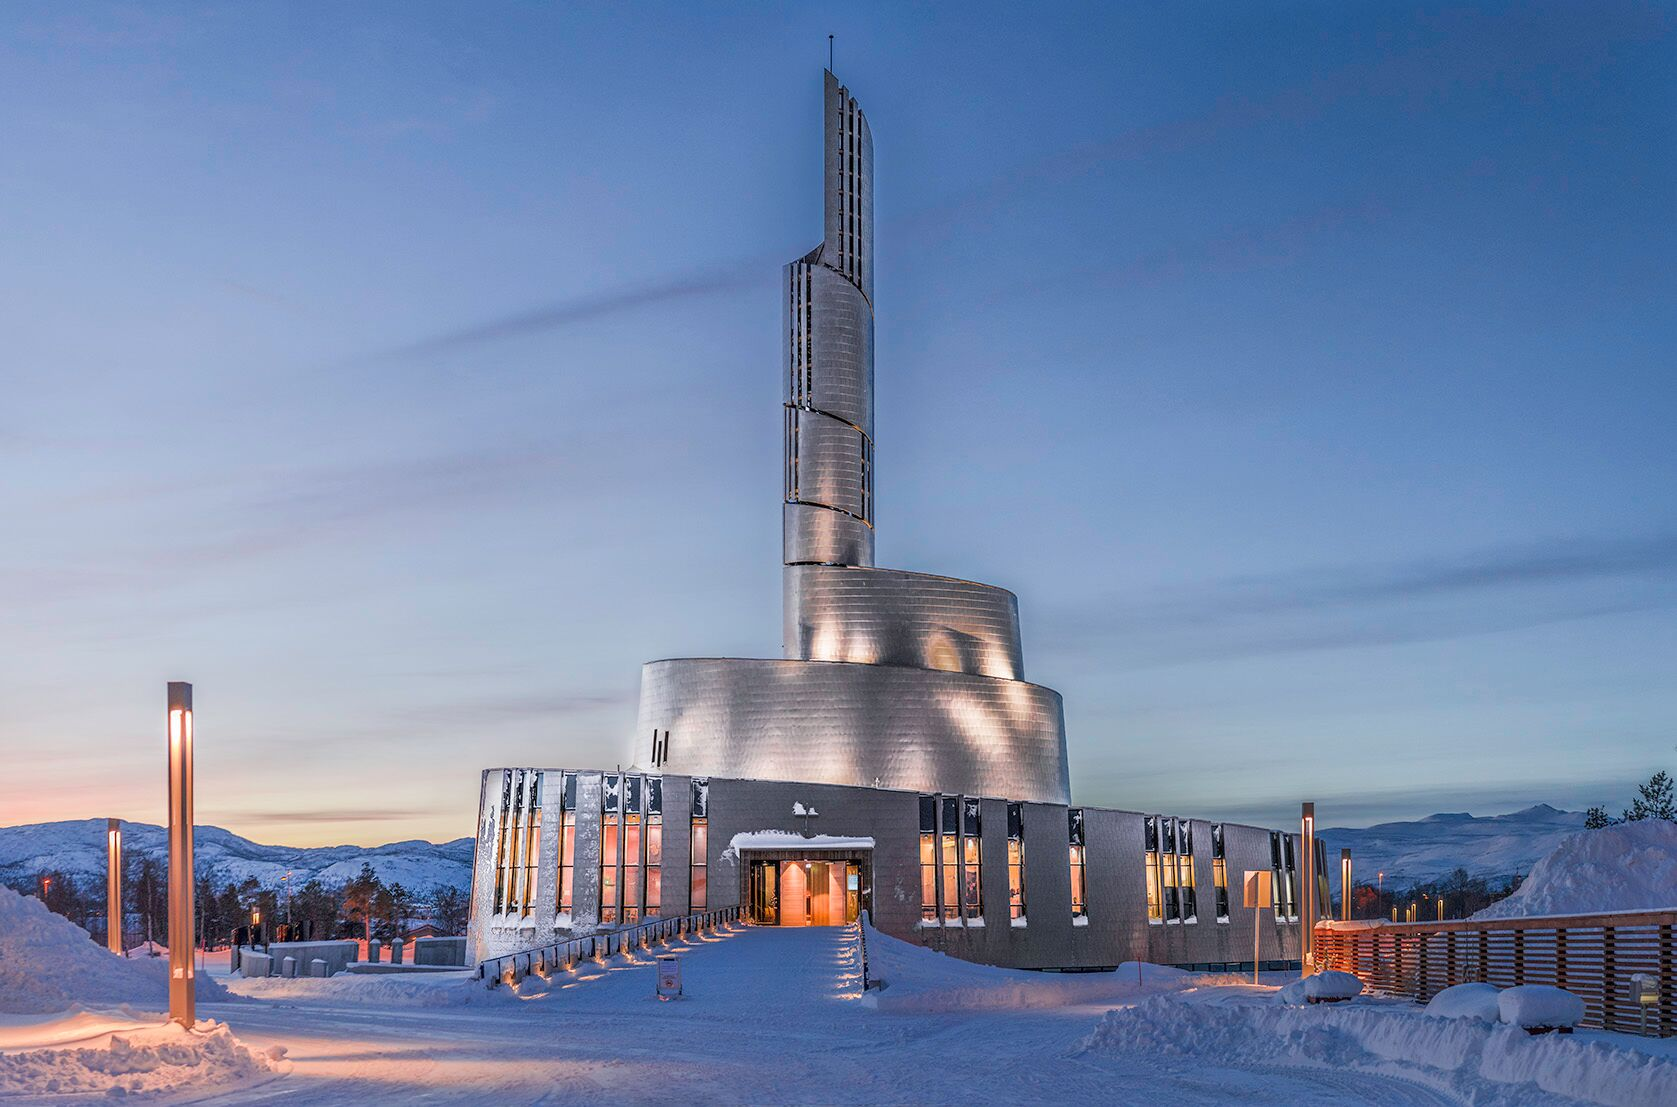 The Northern light cathedral (Foto: Roger Johansen)